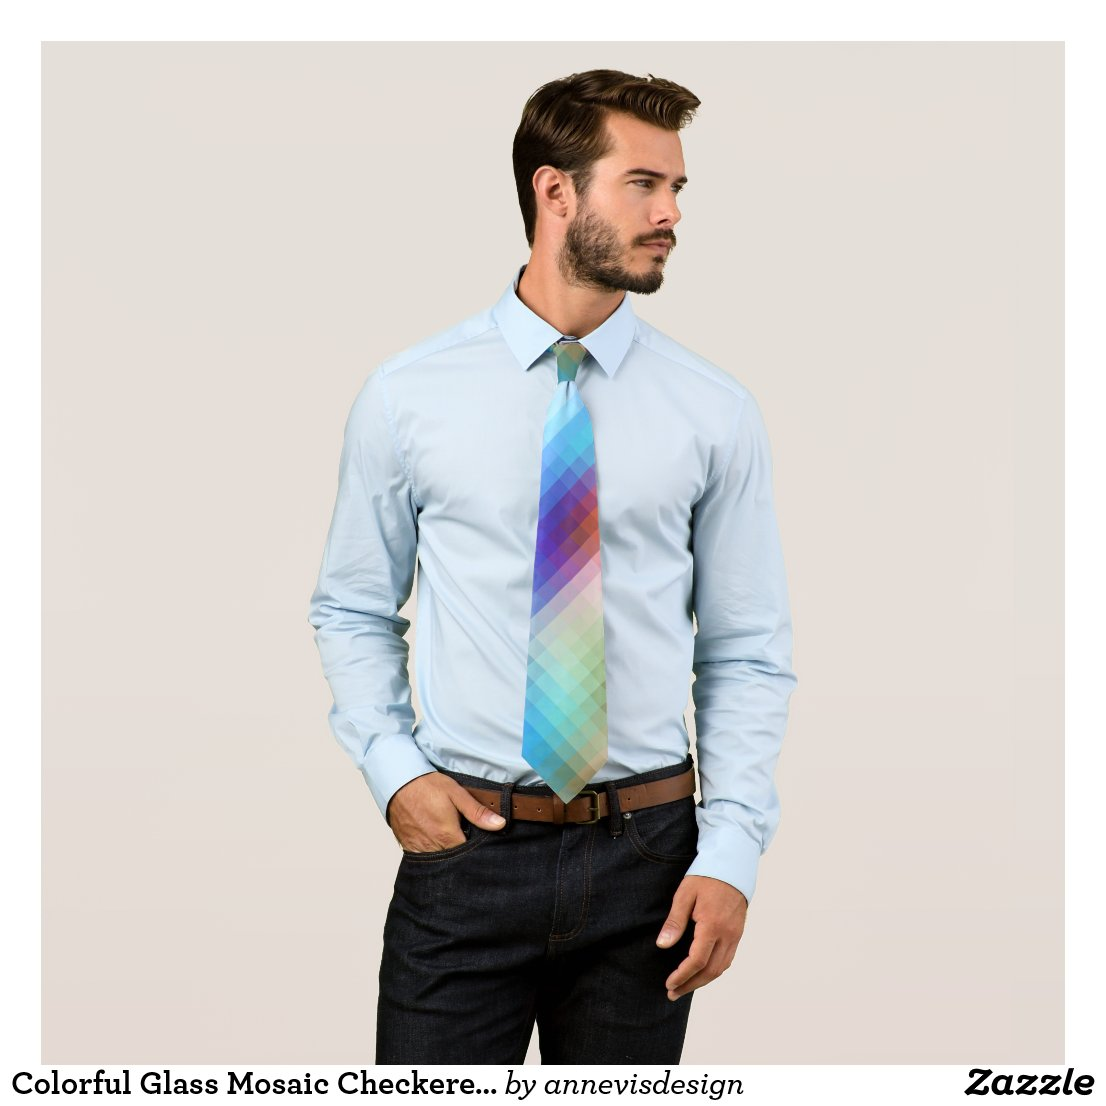 Colorful Glass Mosaic Checkered Tie